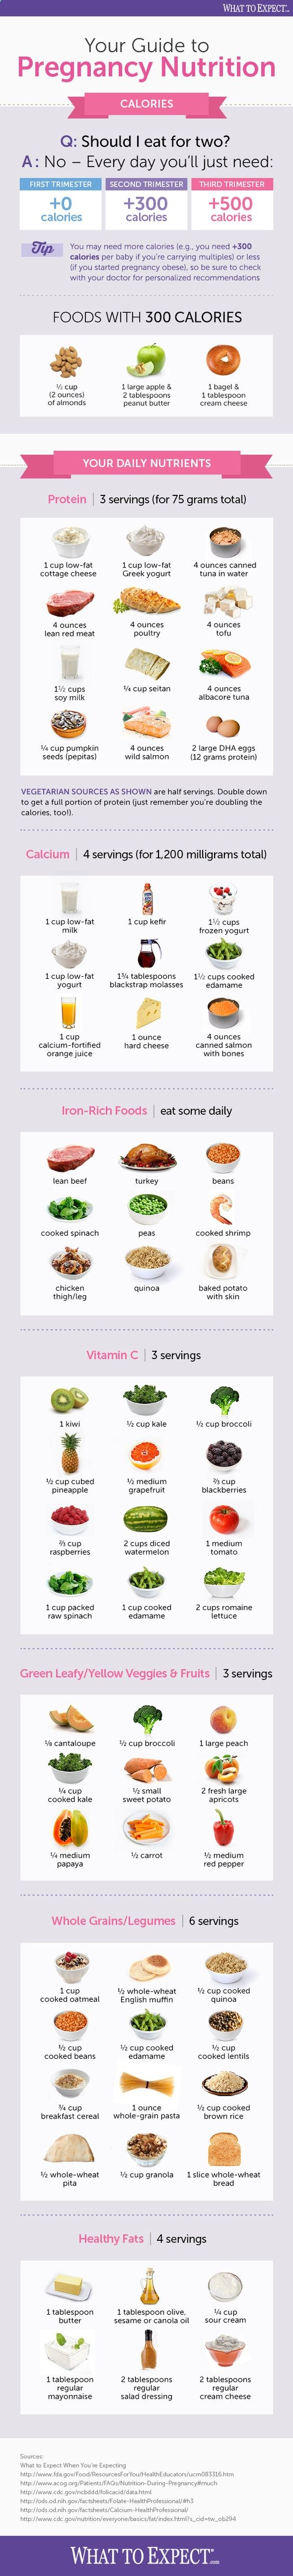 Make Sure Youre Gaining A Healthy Amount Of Weight And Providing